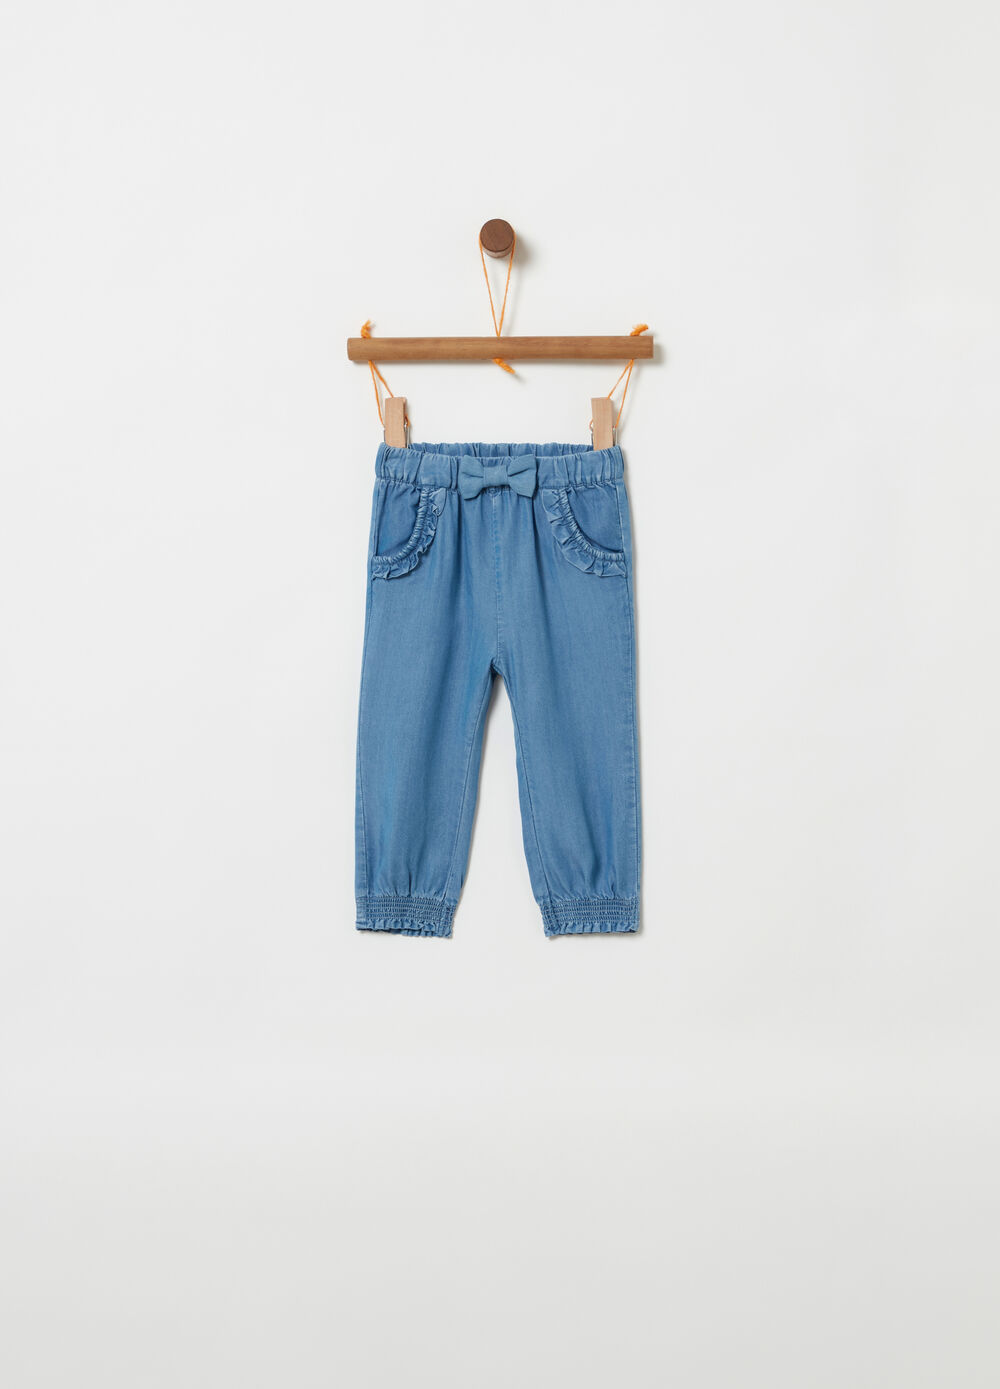 Tencel trousers with bow and frills